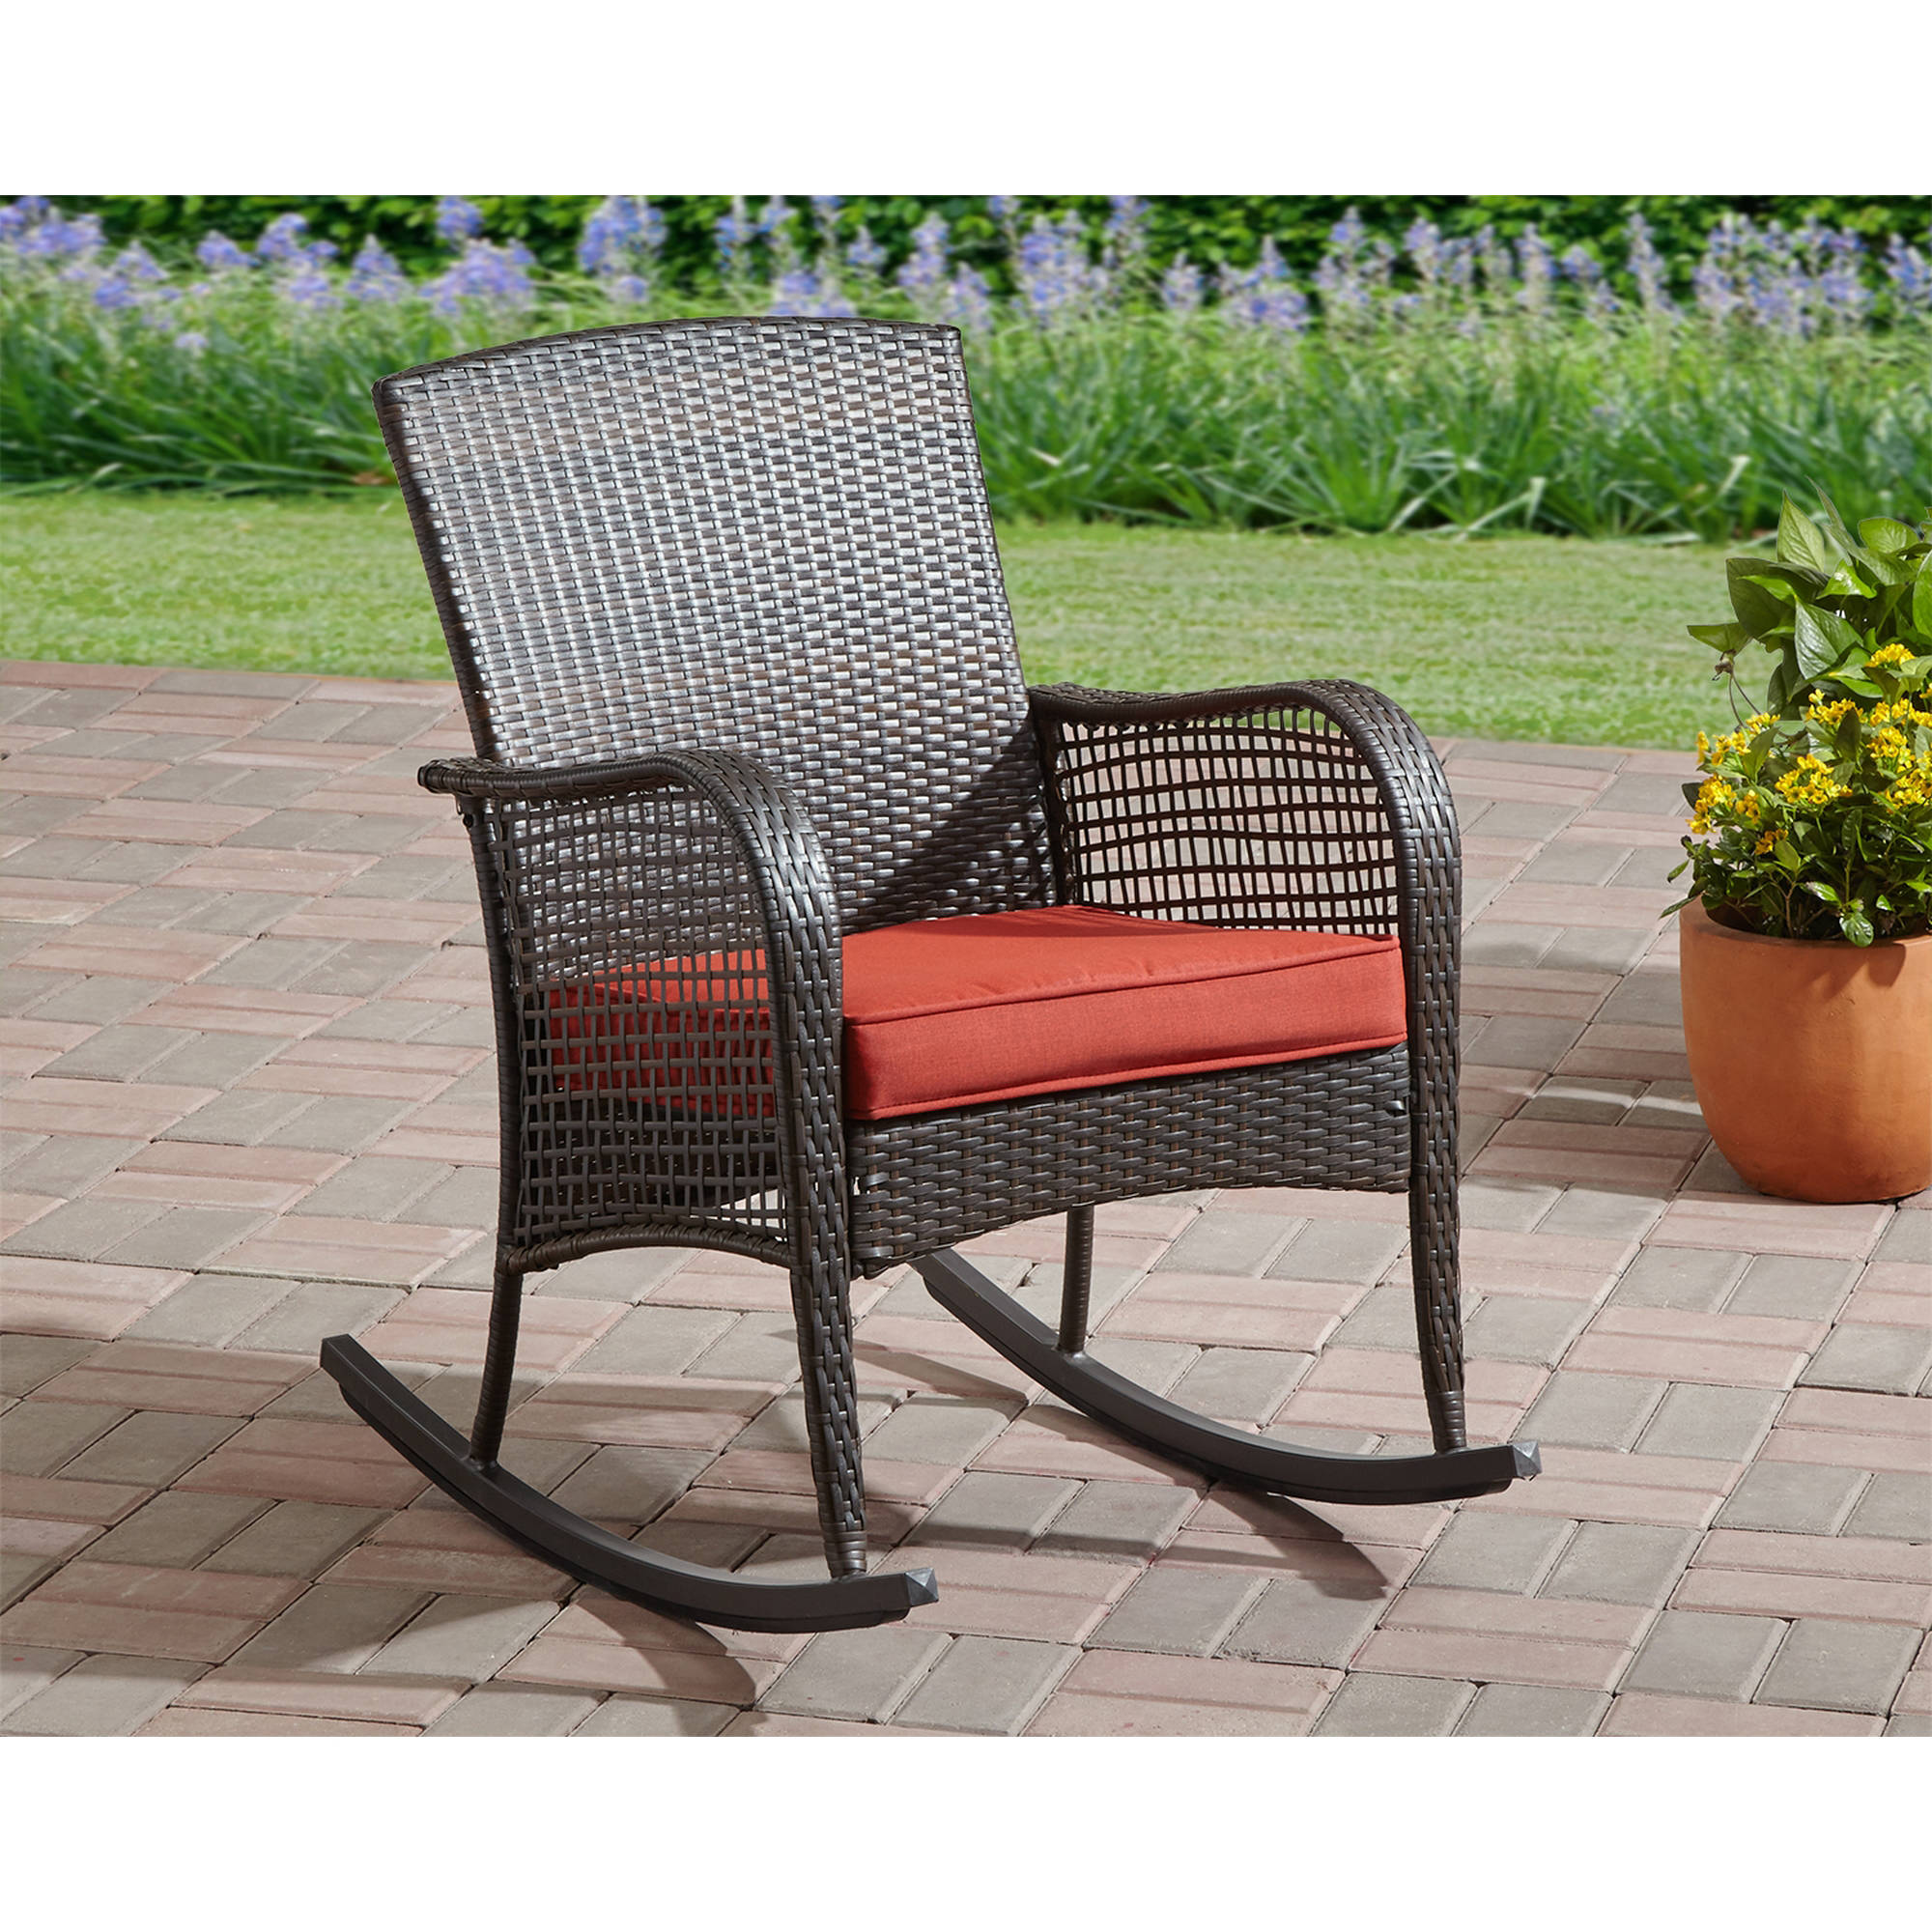 Black Wicker Rocking Chairs Details About Rocking Chair Cushion Seat Wicker Steel Frame Outdoor Patio Deck Porch Furniture